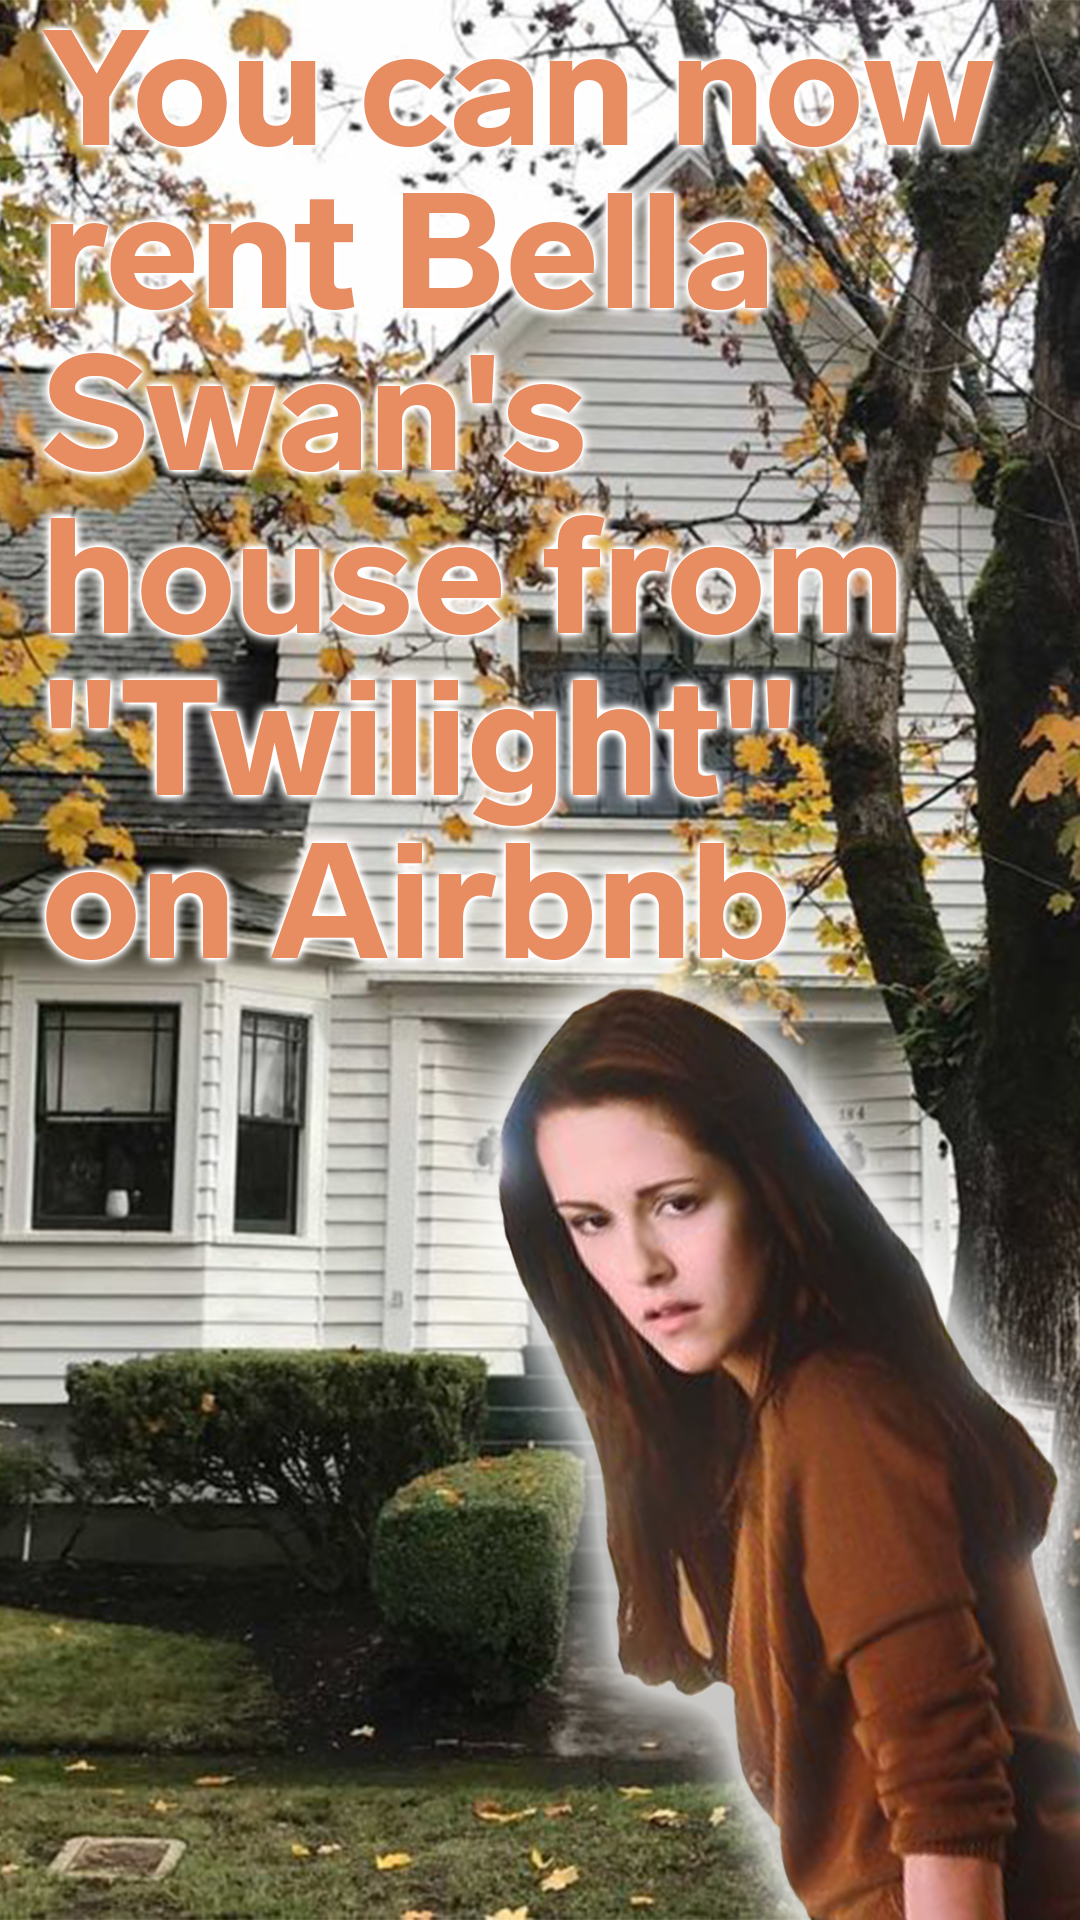 You Can Now Rent Bella Swan S House From Twilight On Airbnb Twilight House Twilight Film Twilight Fans